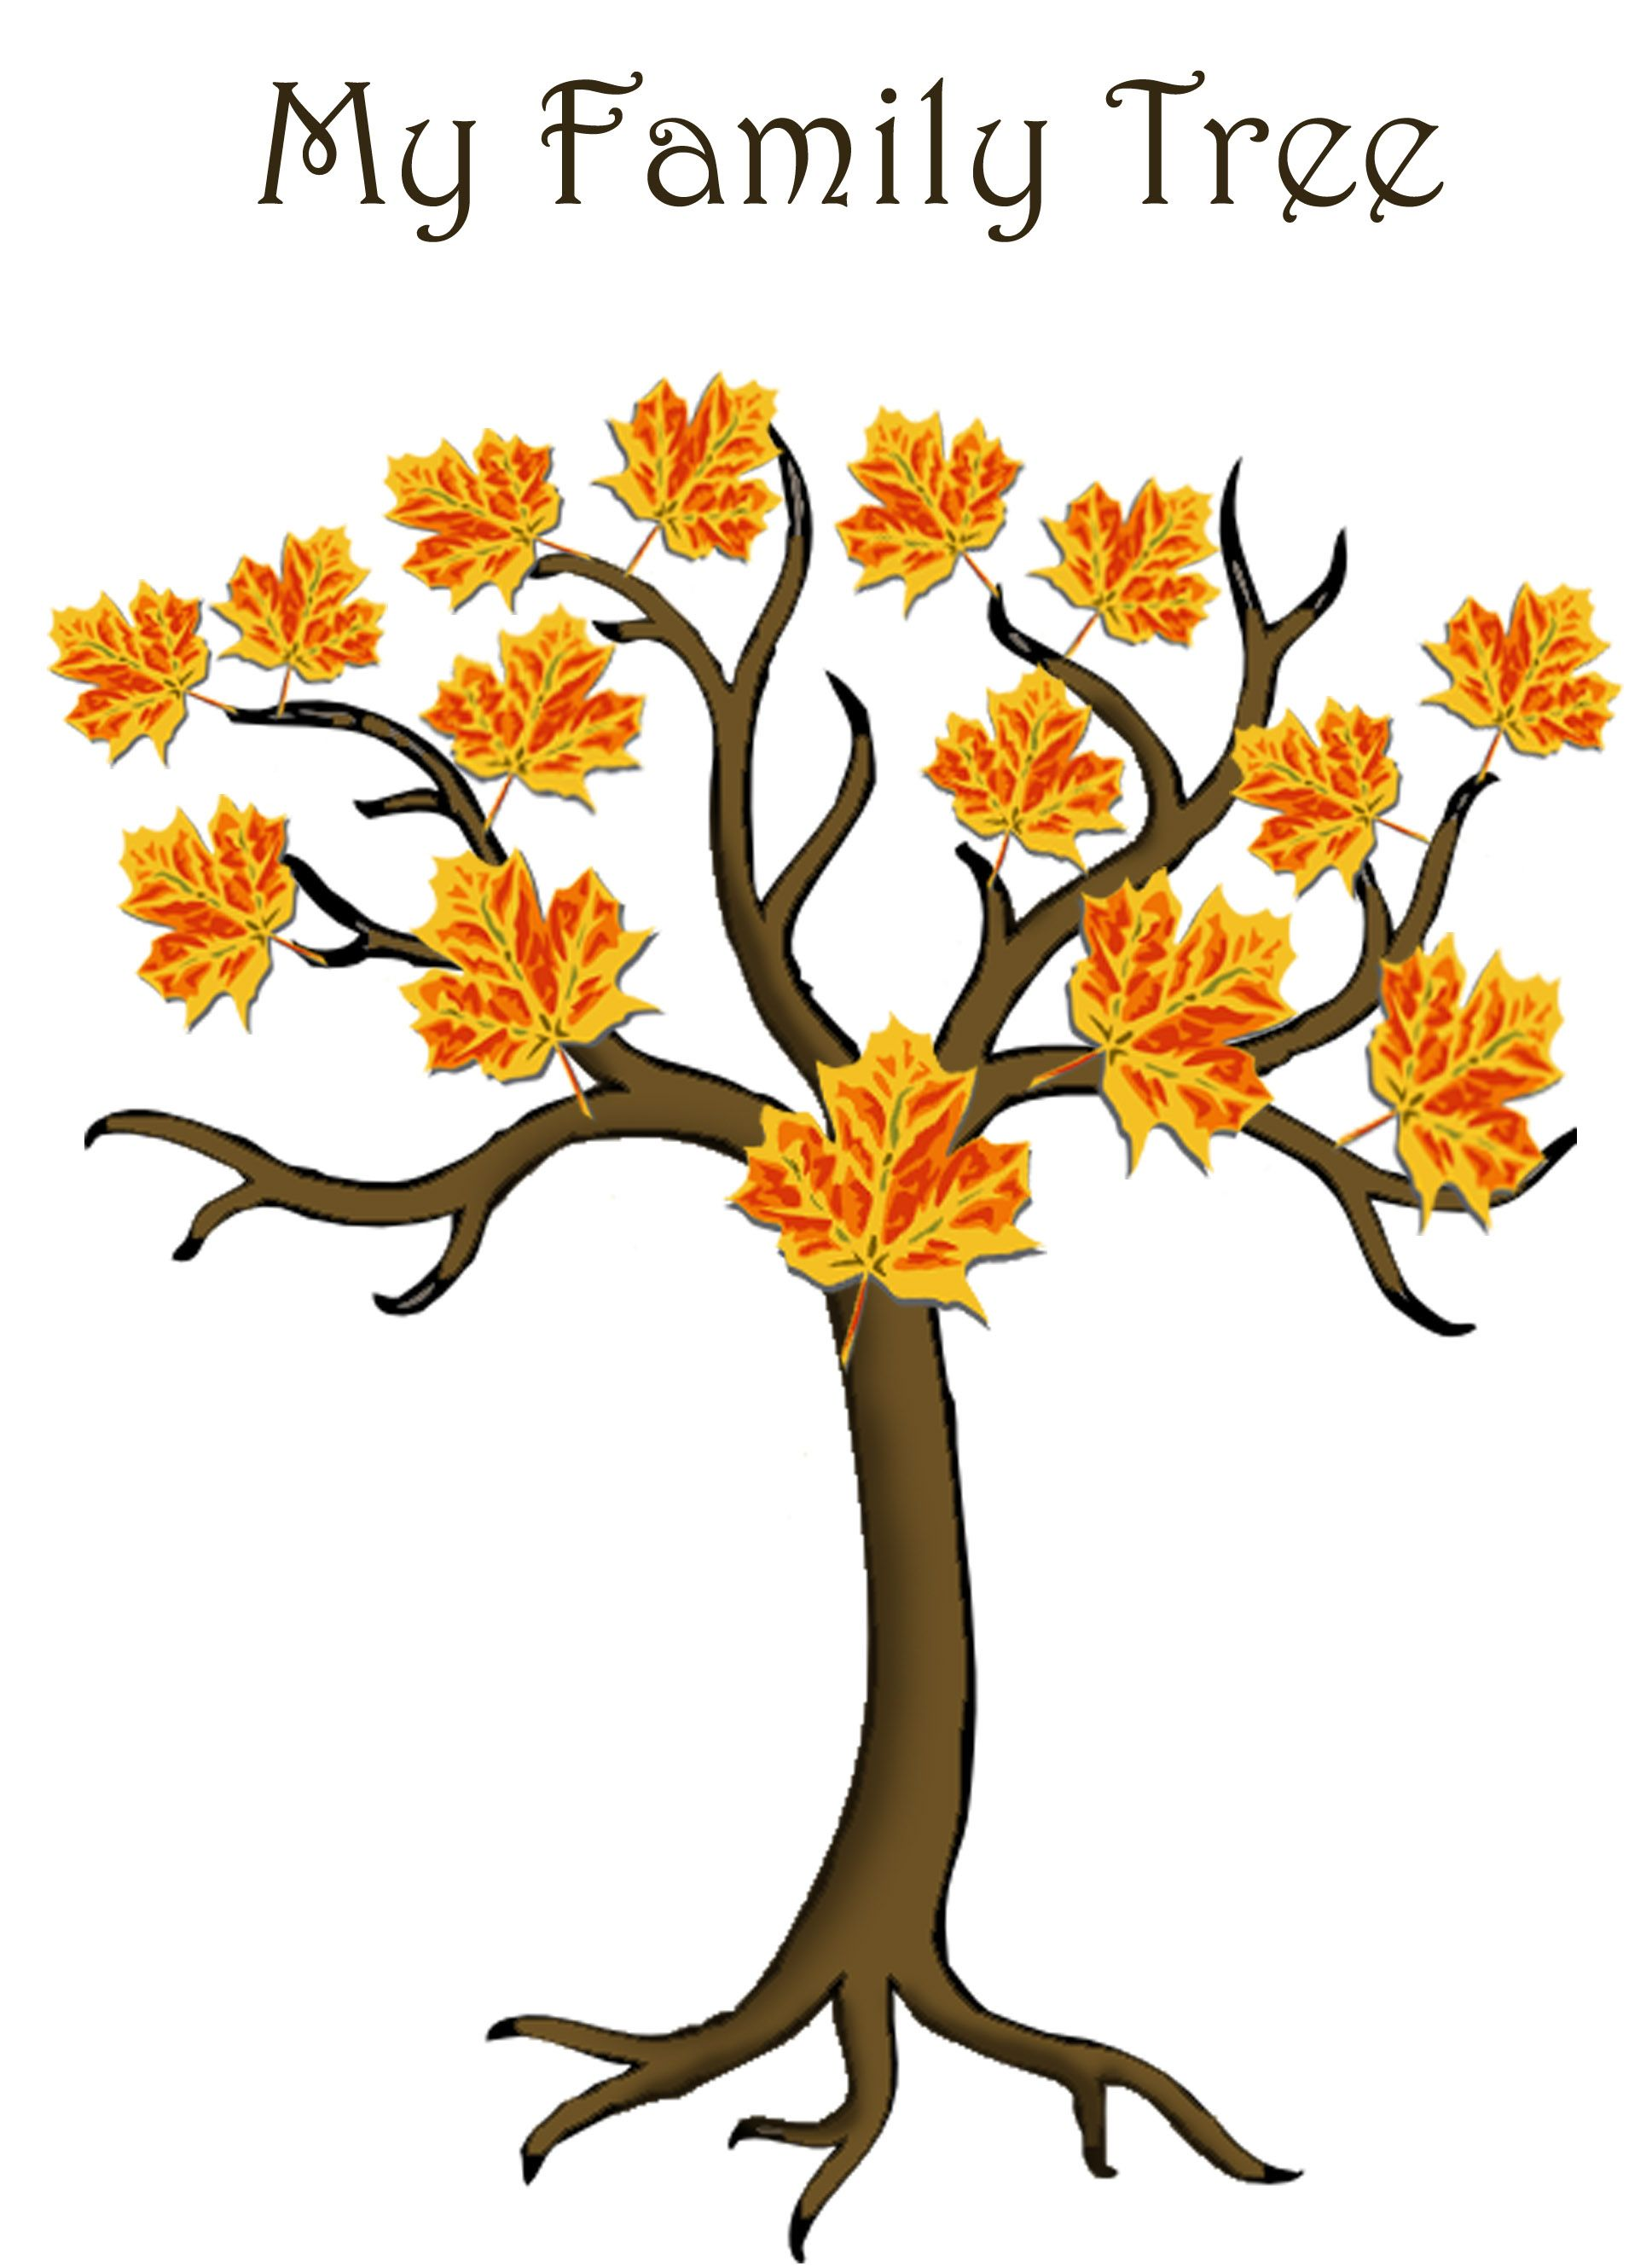 Simple 4 Generations Family Tree Template For Children To